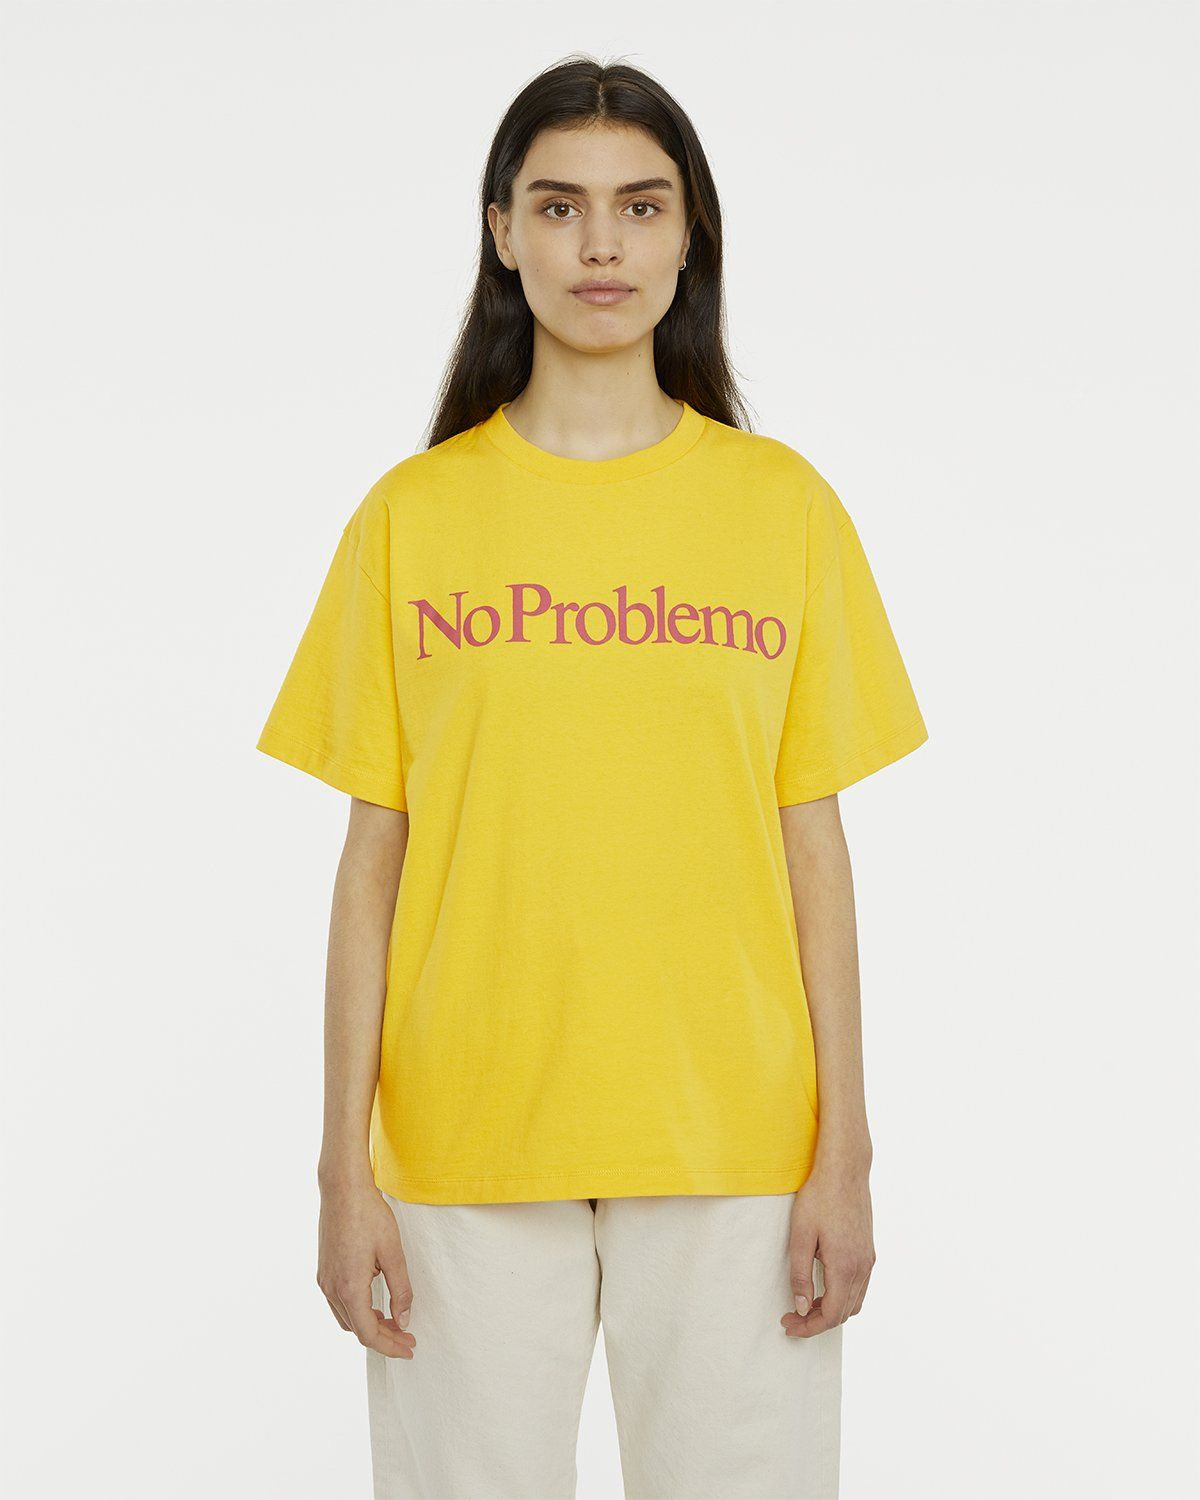 Aries - No Problemo Tee Yellow - Image 4